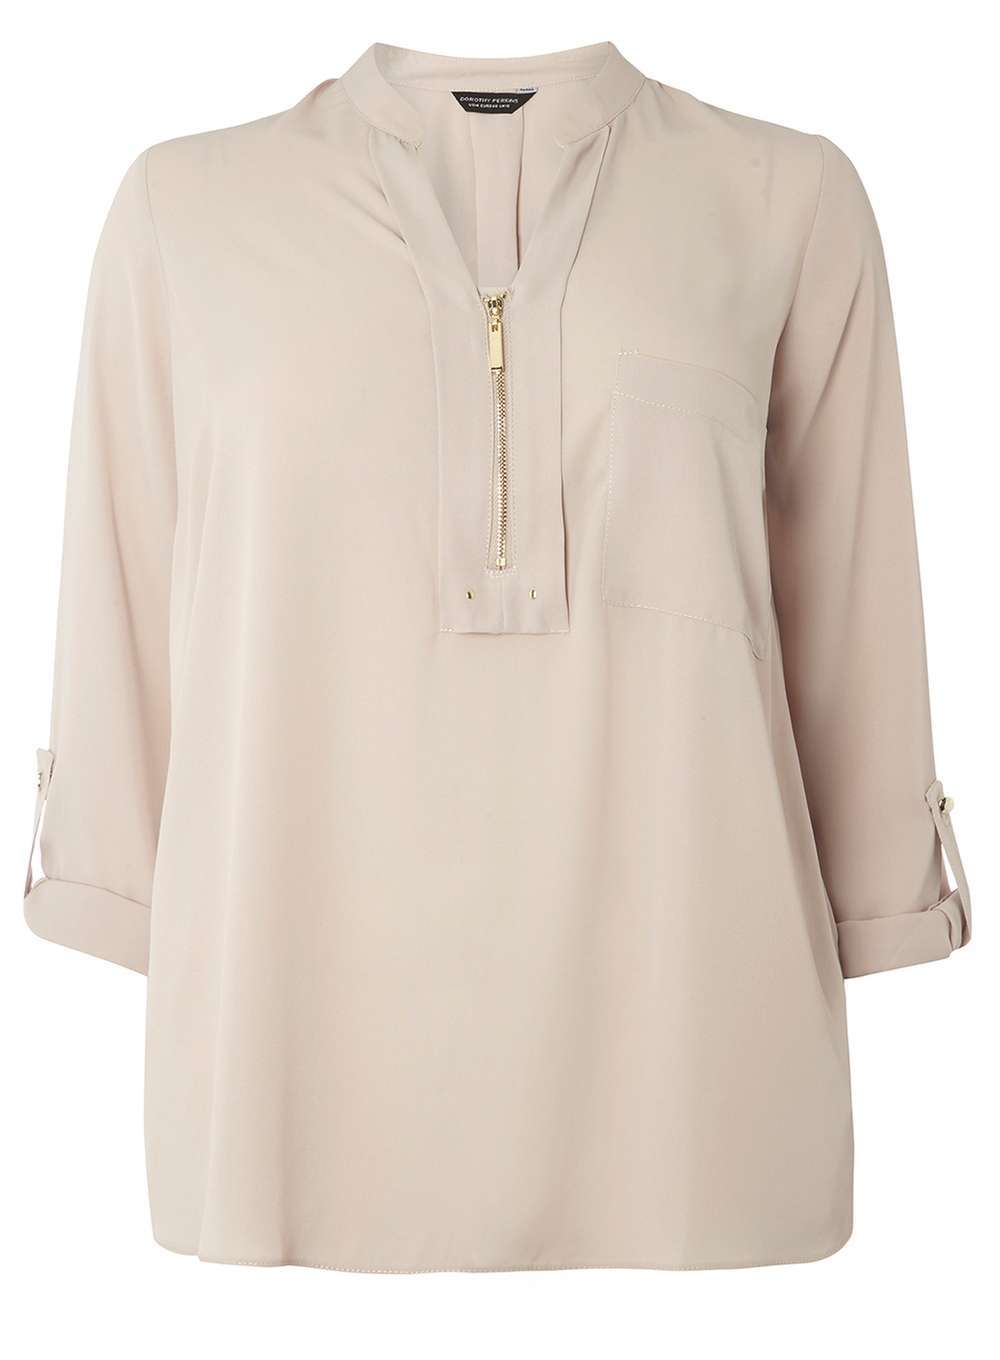 Womens Dp Curve Plus Size Mink Notch Neck Zip Shirt Brown - pattern: plain; style: blouse; predominant colour: light grey; occasions: casual, creative work; length: standard; neckline: collarstand & mandarin with v-neck; fibres: polyester/polyamide - 100%; fit: loose; sleeve length: 3/4 length; sleeve style: standard; pattern type: fabric; texture group: other - light to midweight; wardrobe: basic; season: a/w 2016